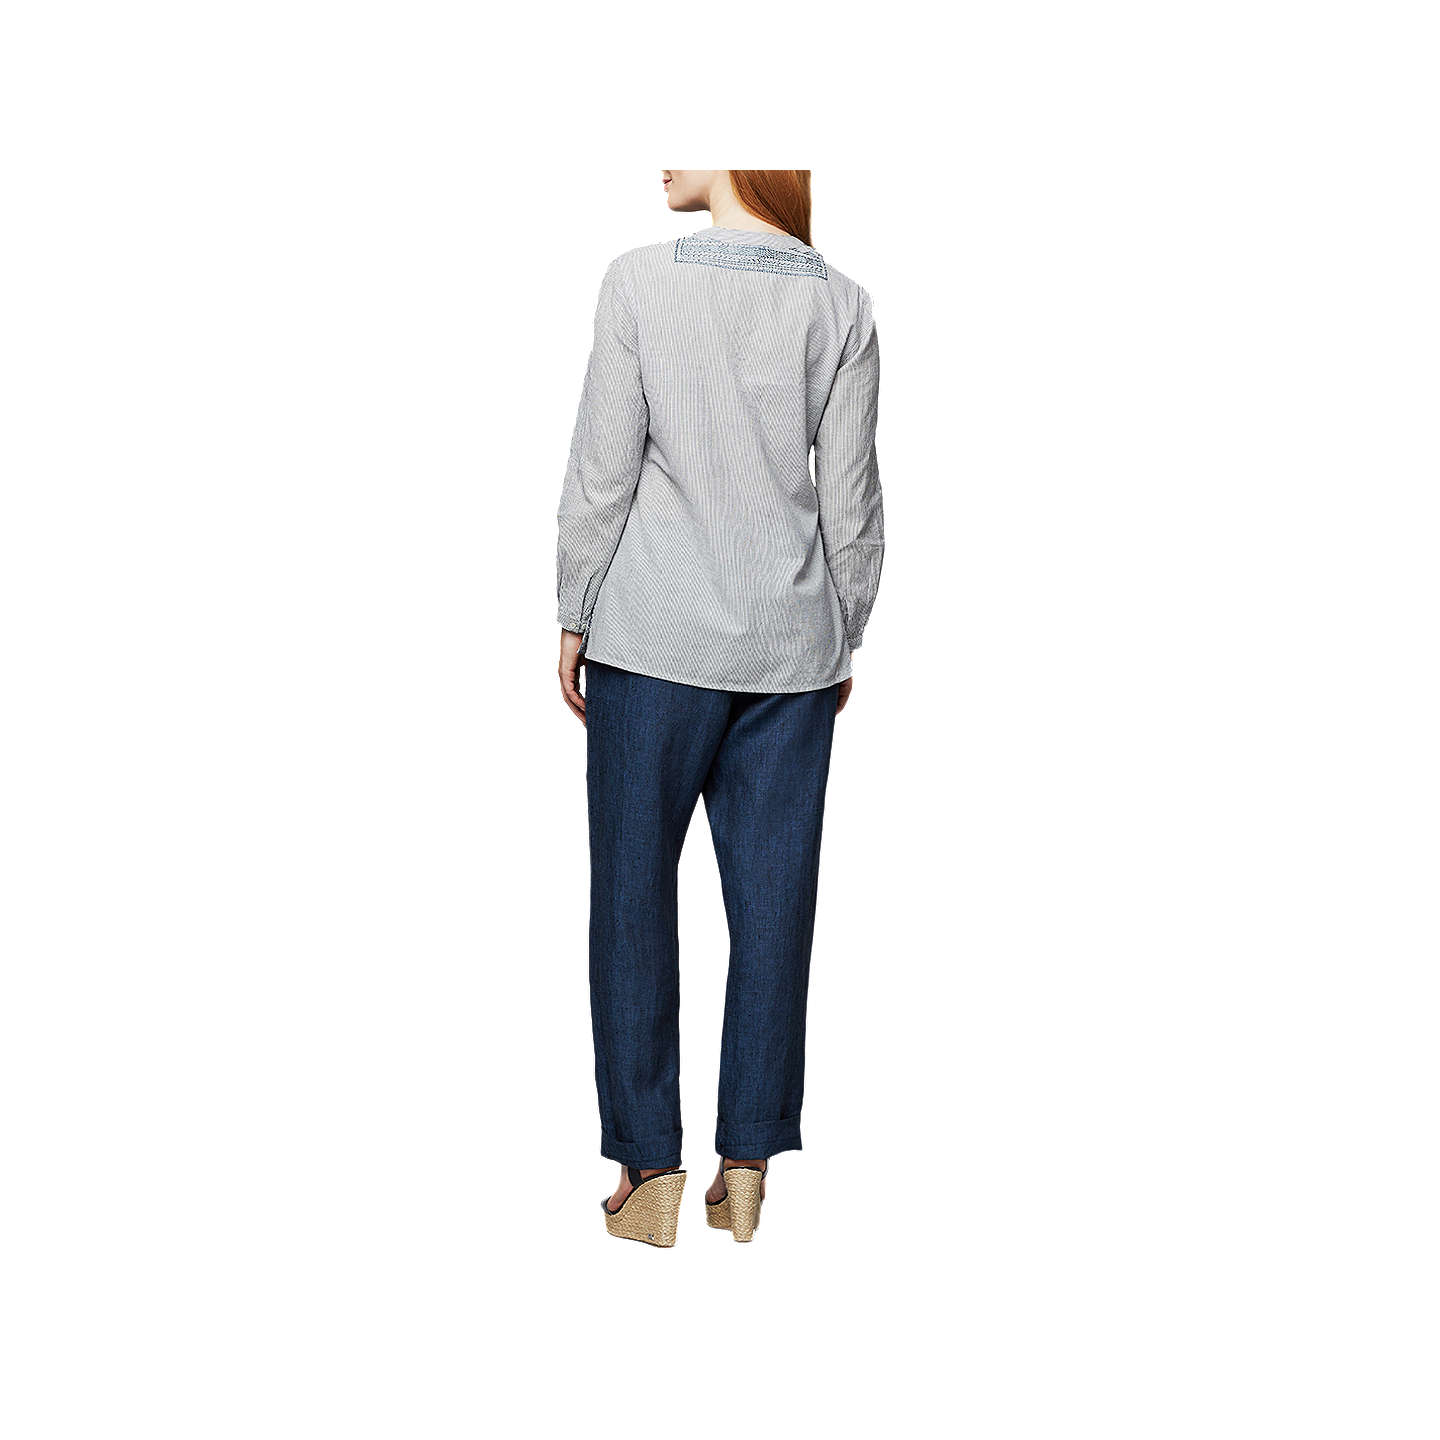 BuyEast Linen Drawstring Trousers, Indigo, 10 Online at johnlewis.com